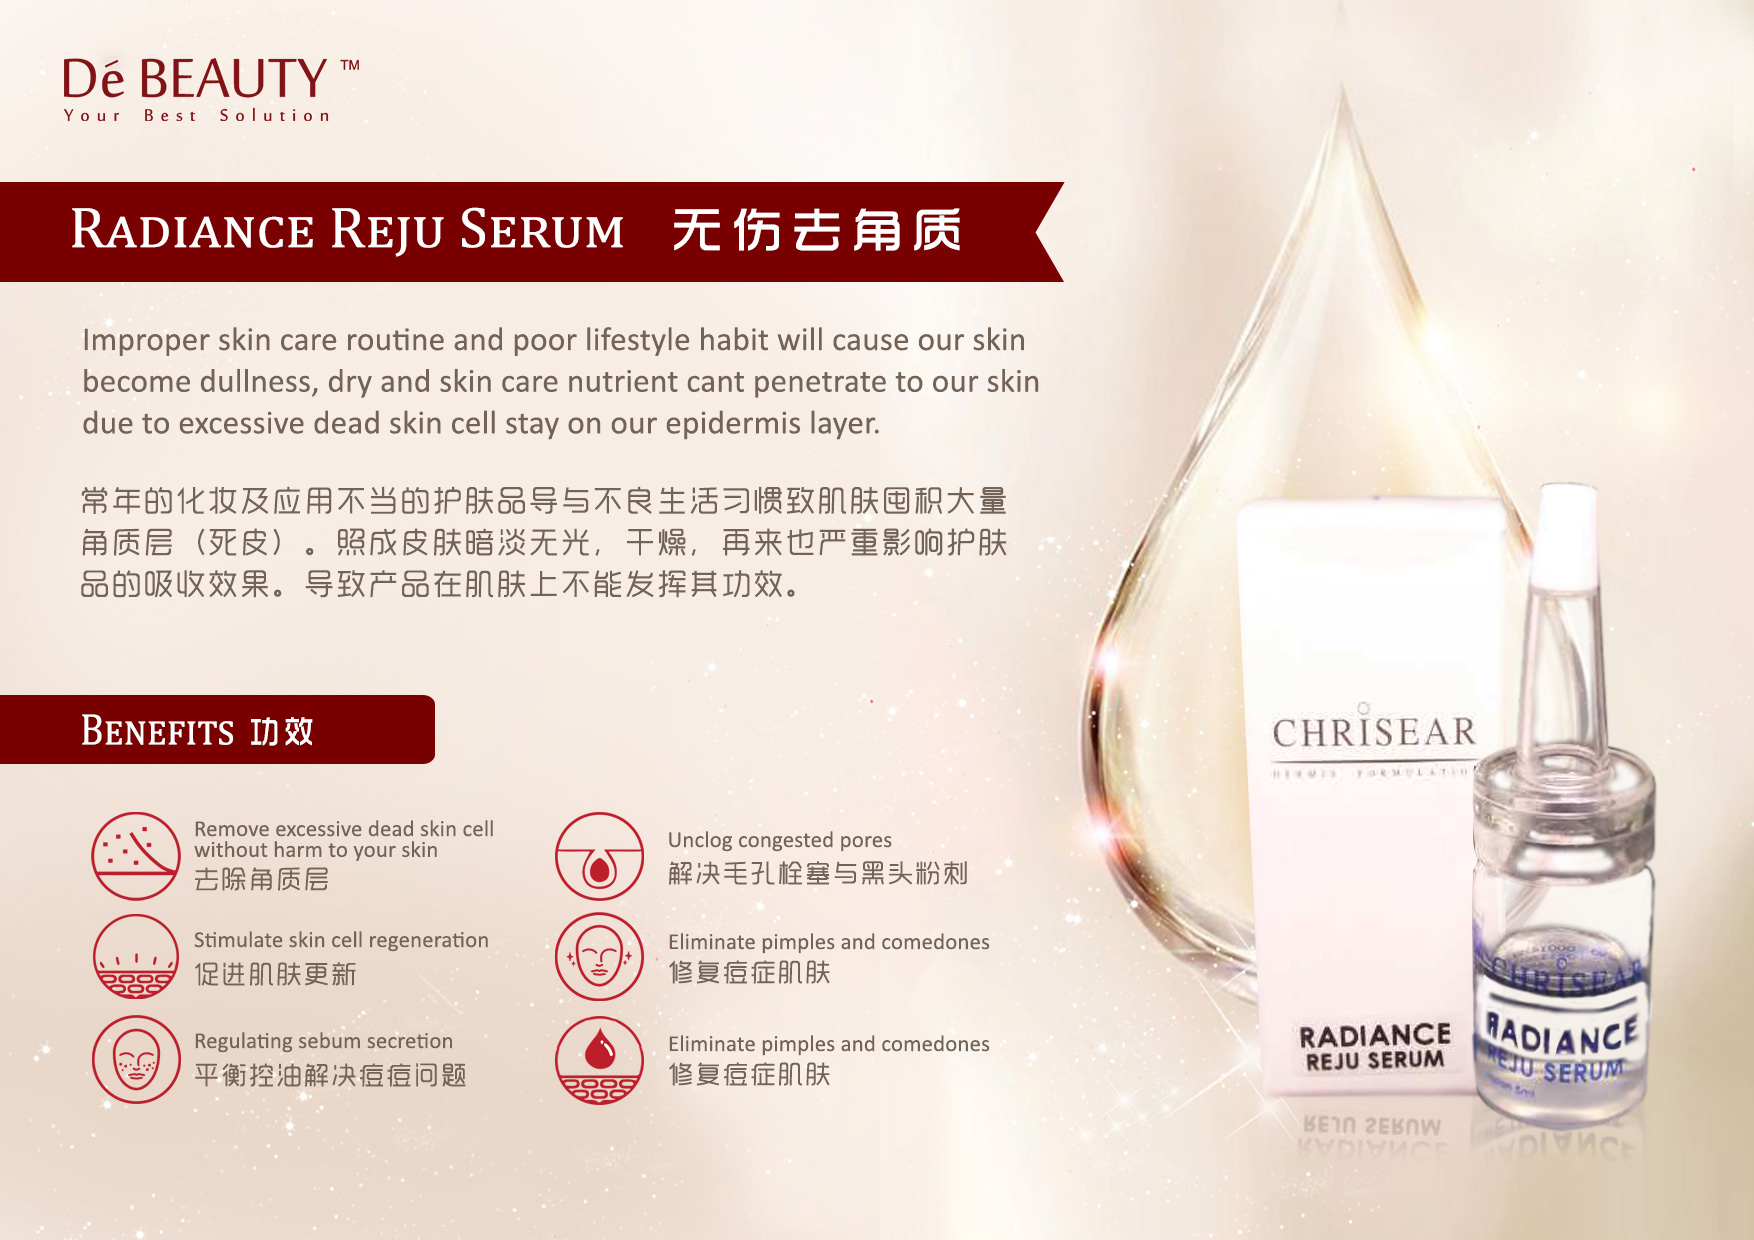 De Beauty Chrisear Radiance Reju Serum